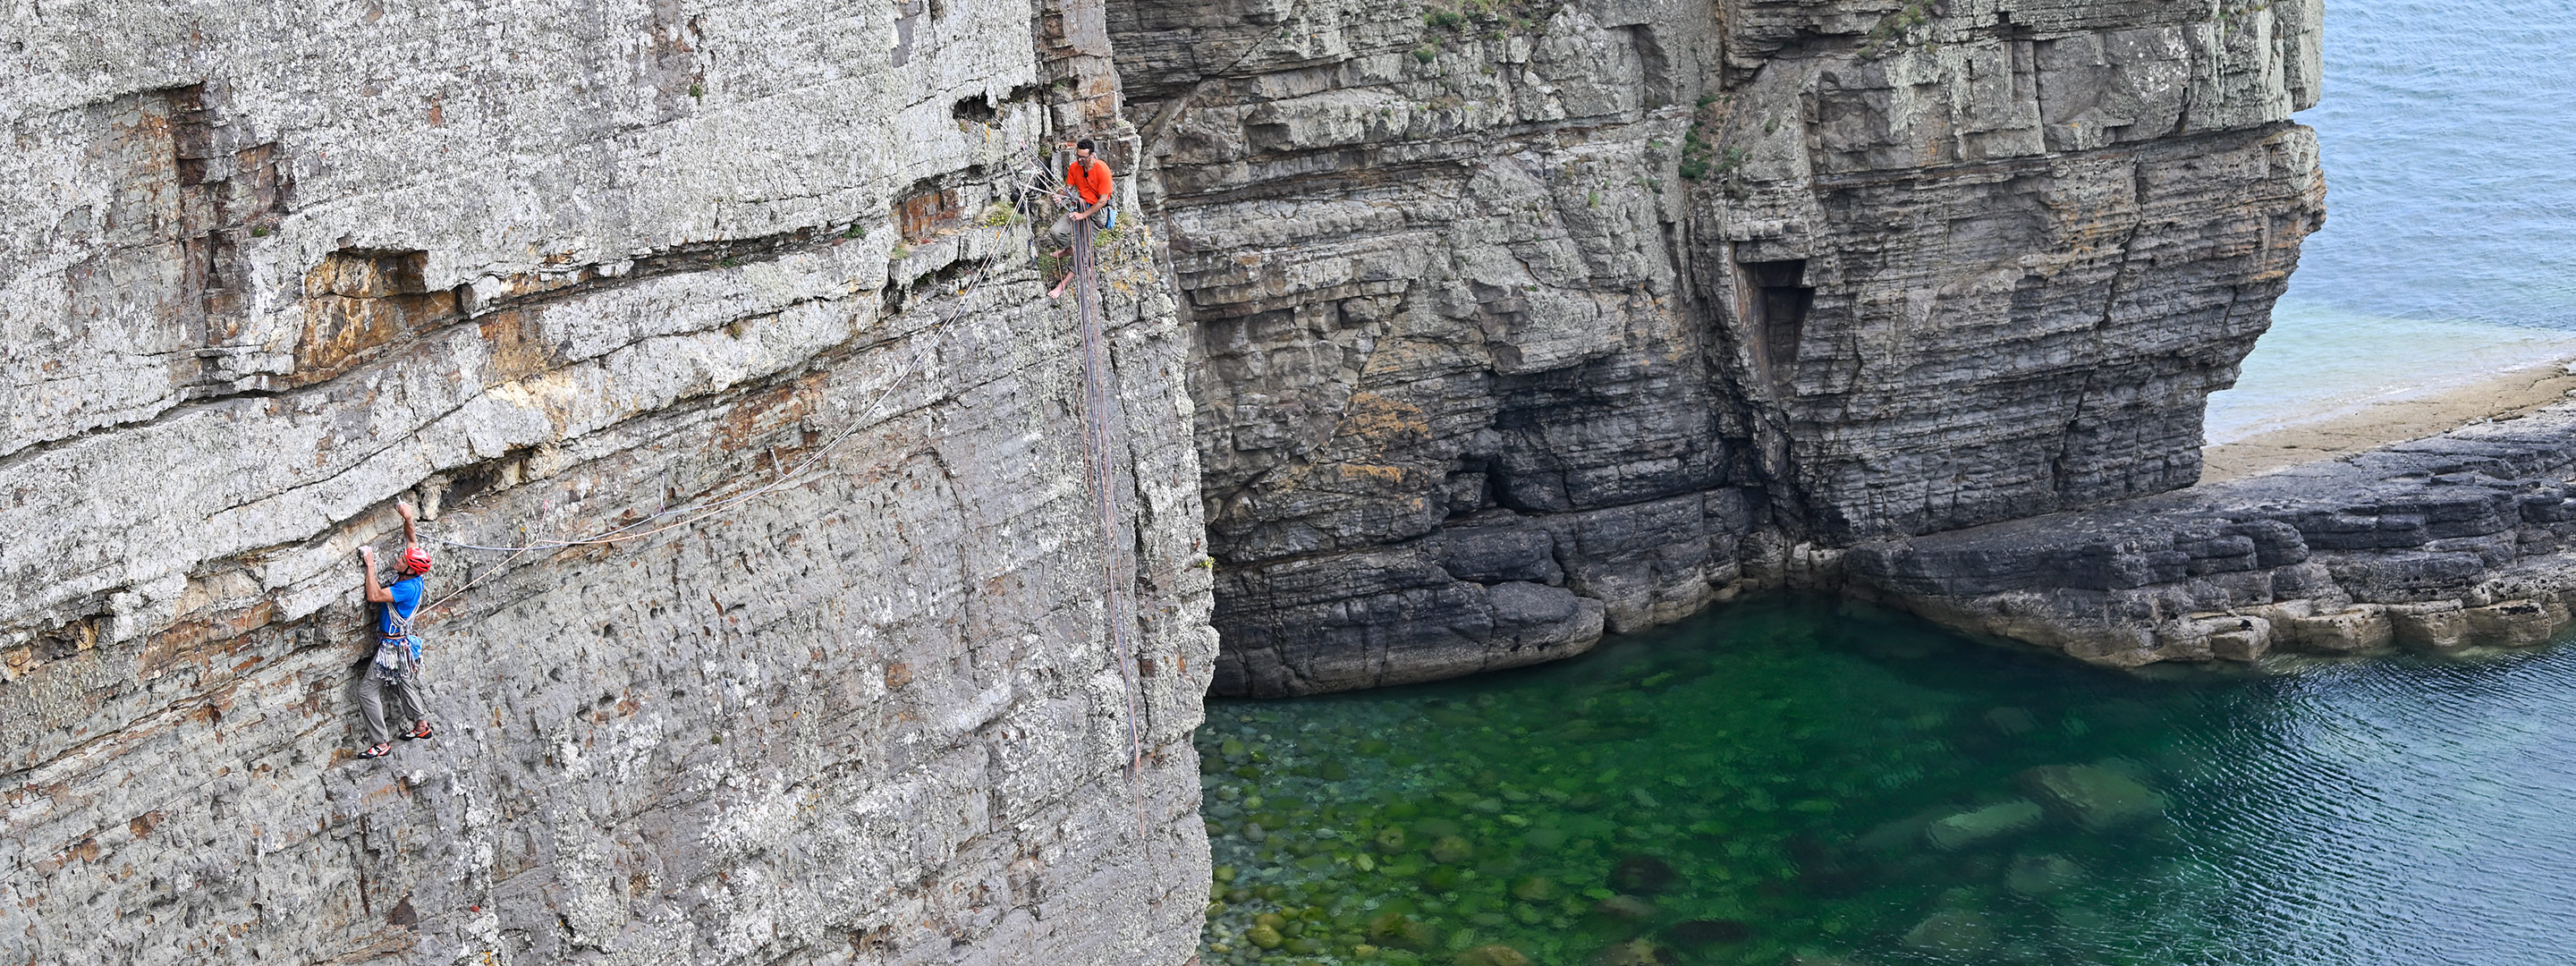 Mick Lovatt heading out across Byzantium Wall on the first day.